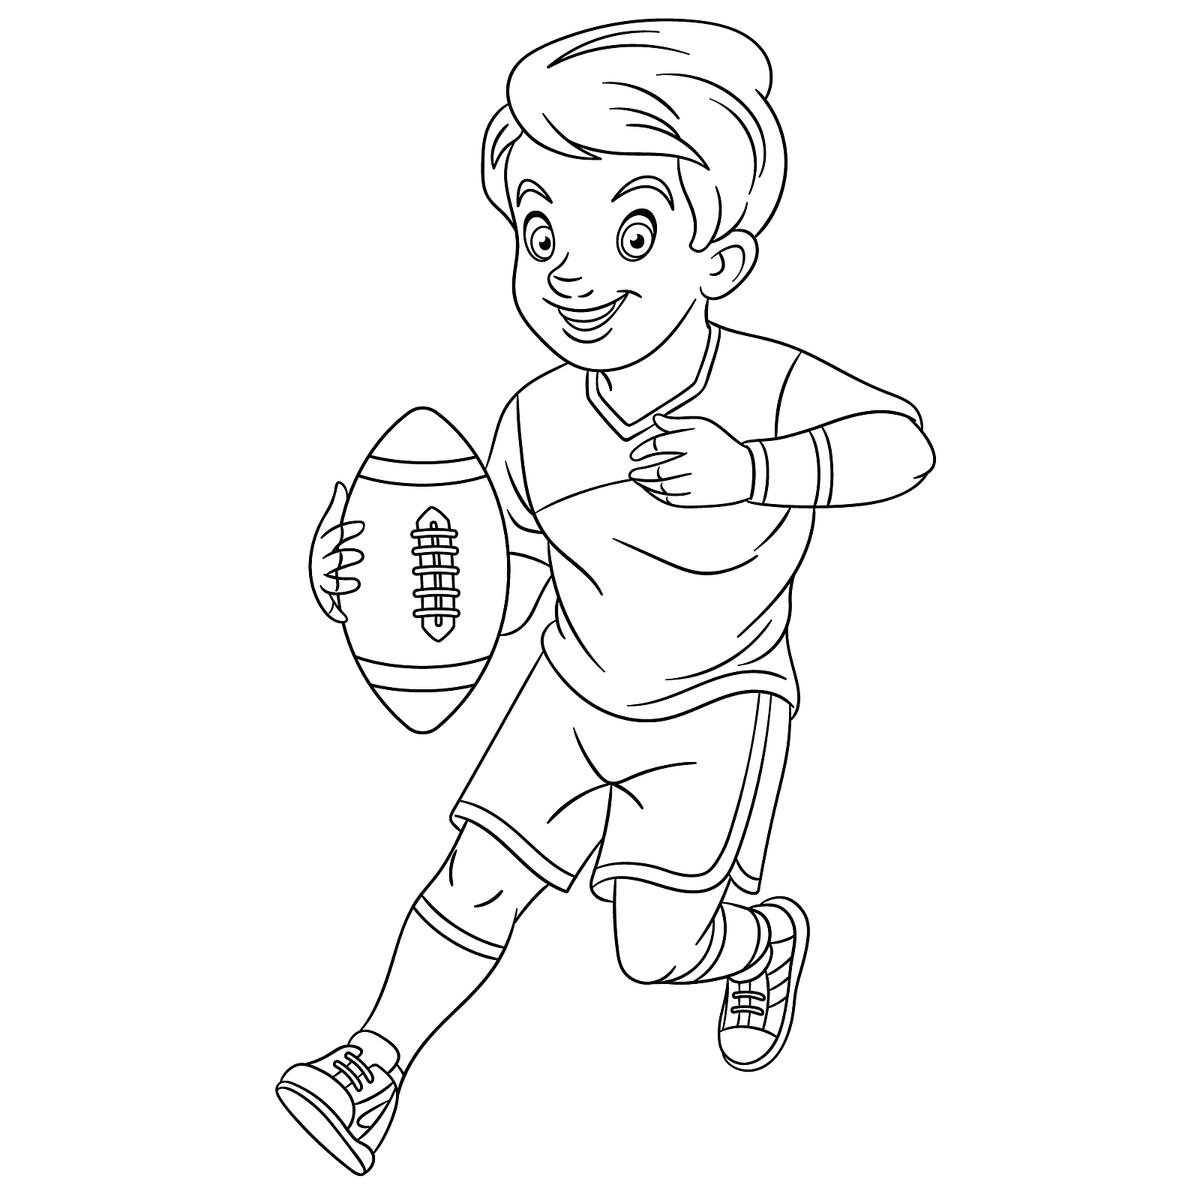 football coloring pages to print printable football coloring page 4 football pages to coloring print